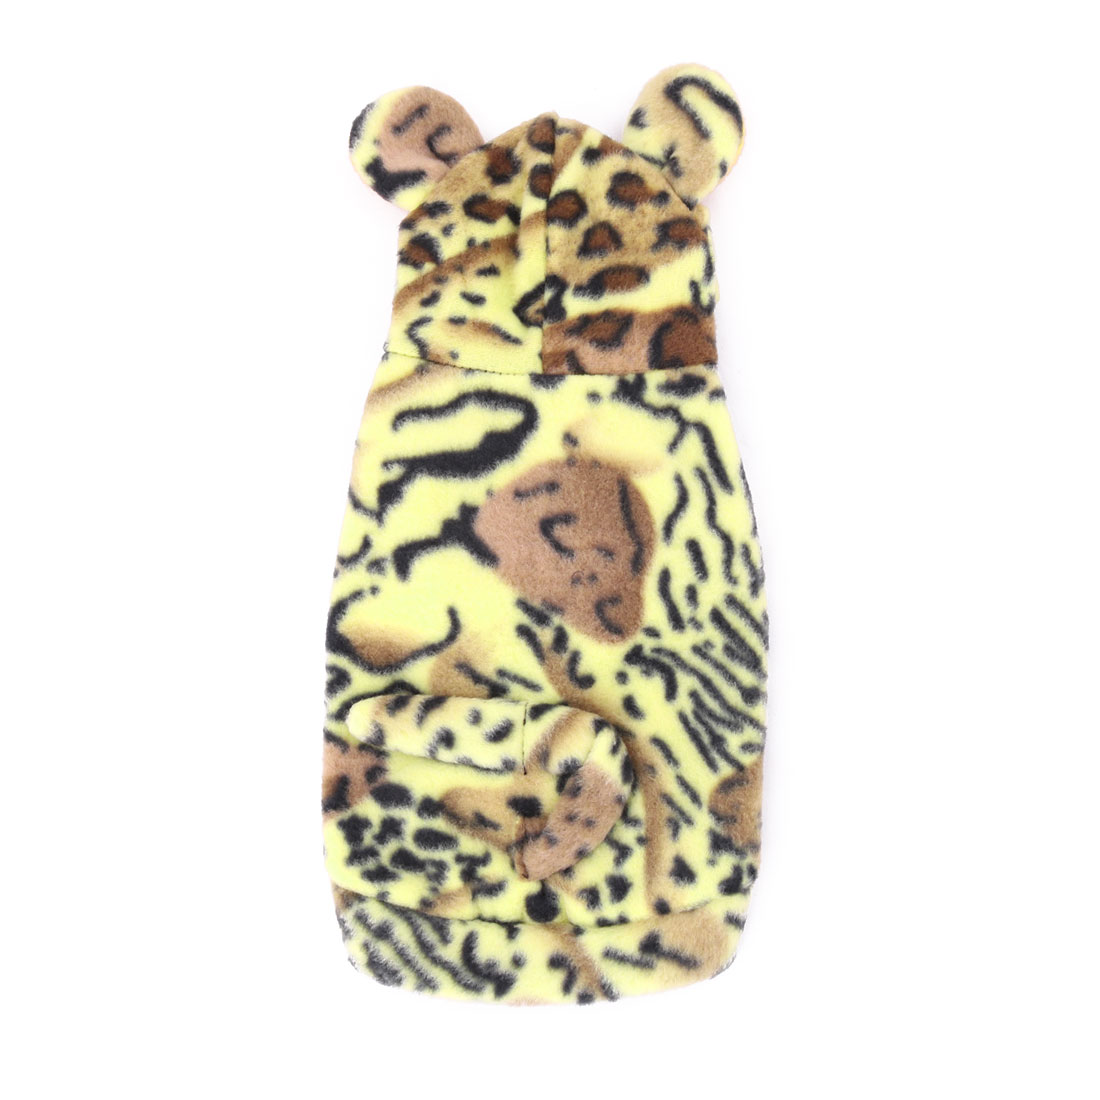 Pet Dog Doggy Cotton Blends Tiger Skin Pattern Clothes Coat Yellow Black